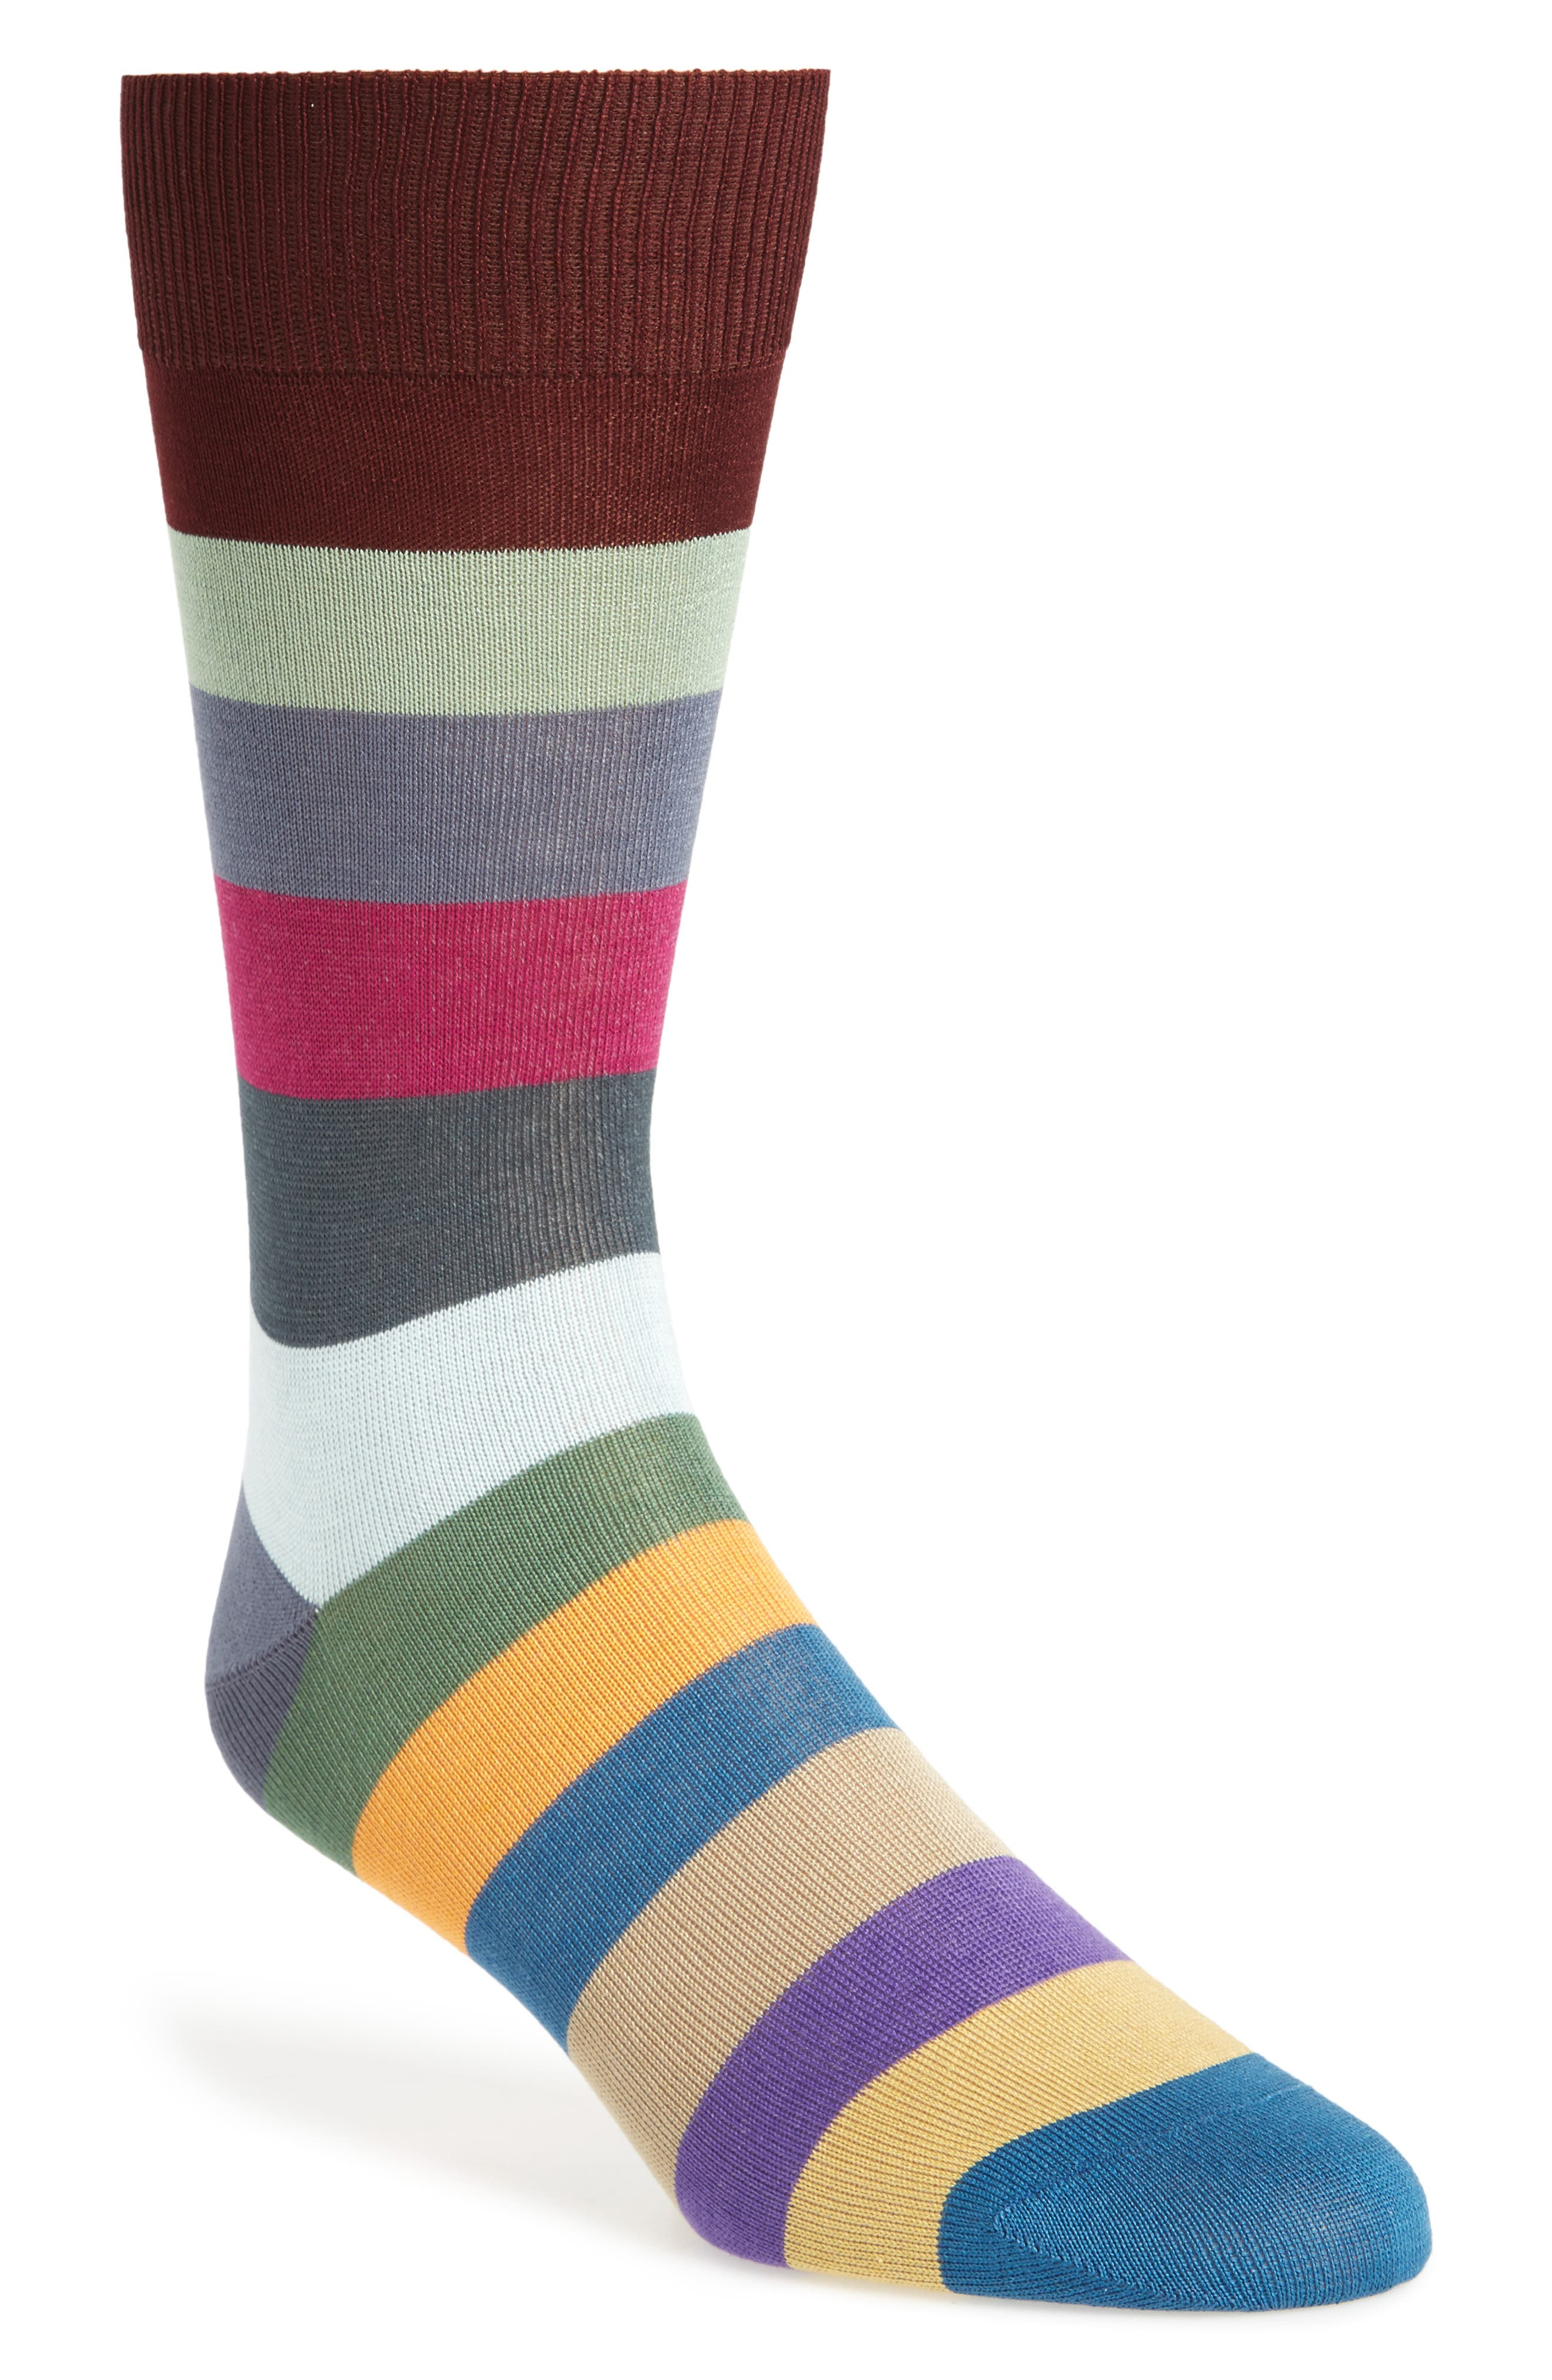 Alternate Image 1 Selected - Paul Smith Tie Stripe Socks